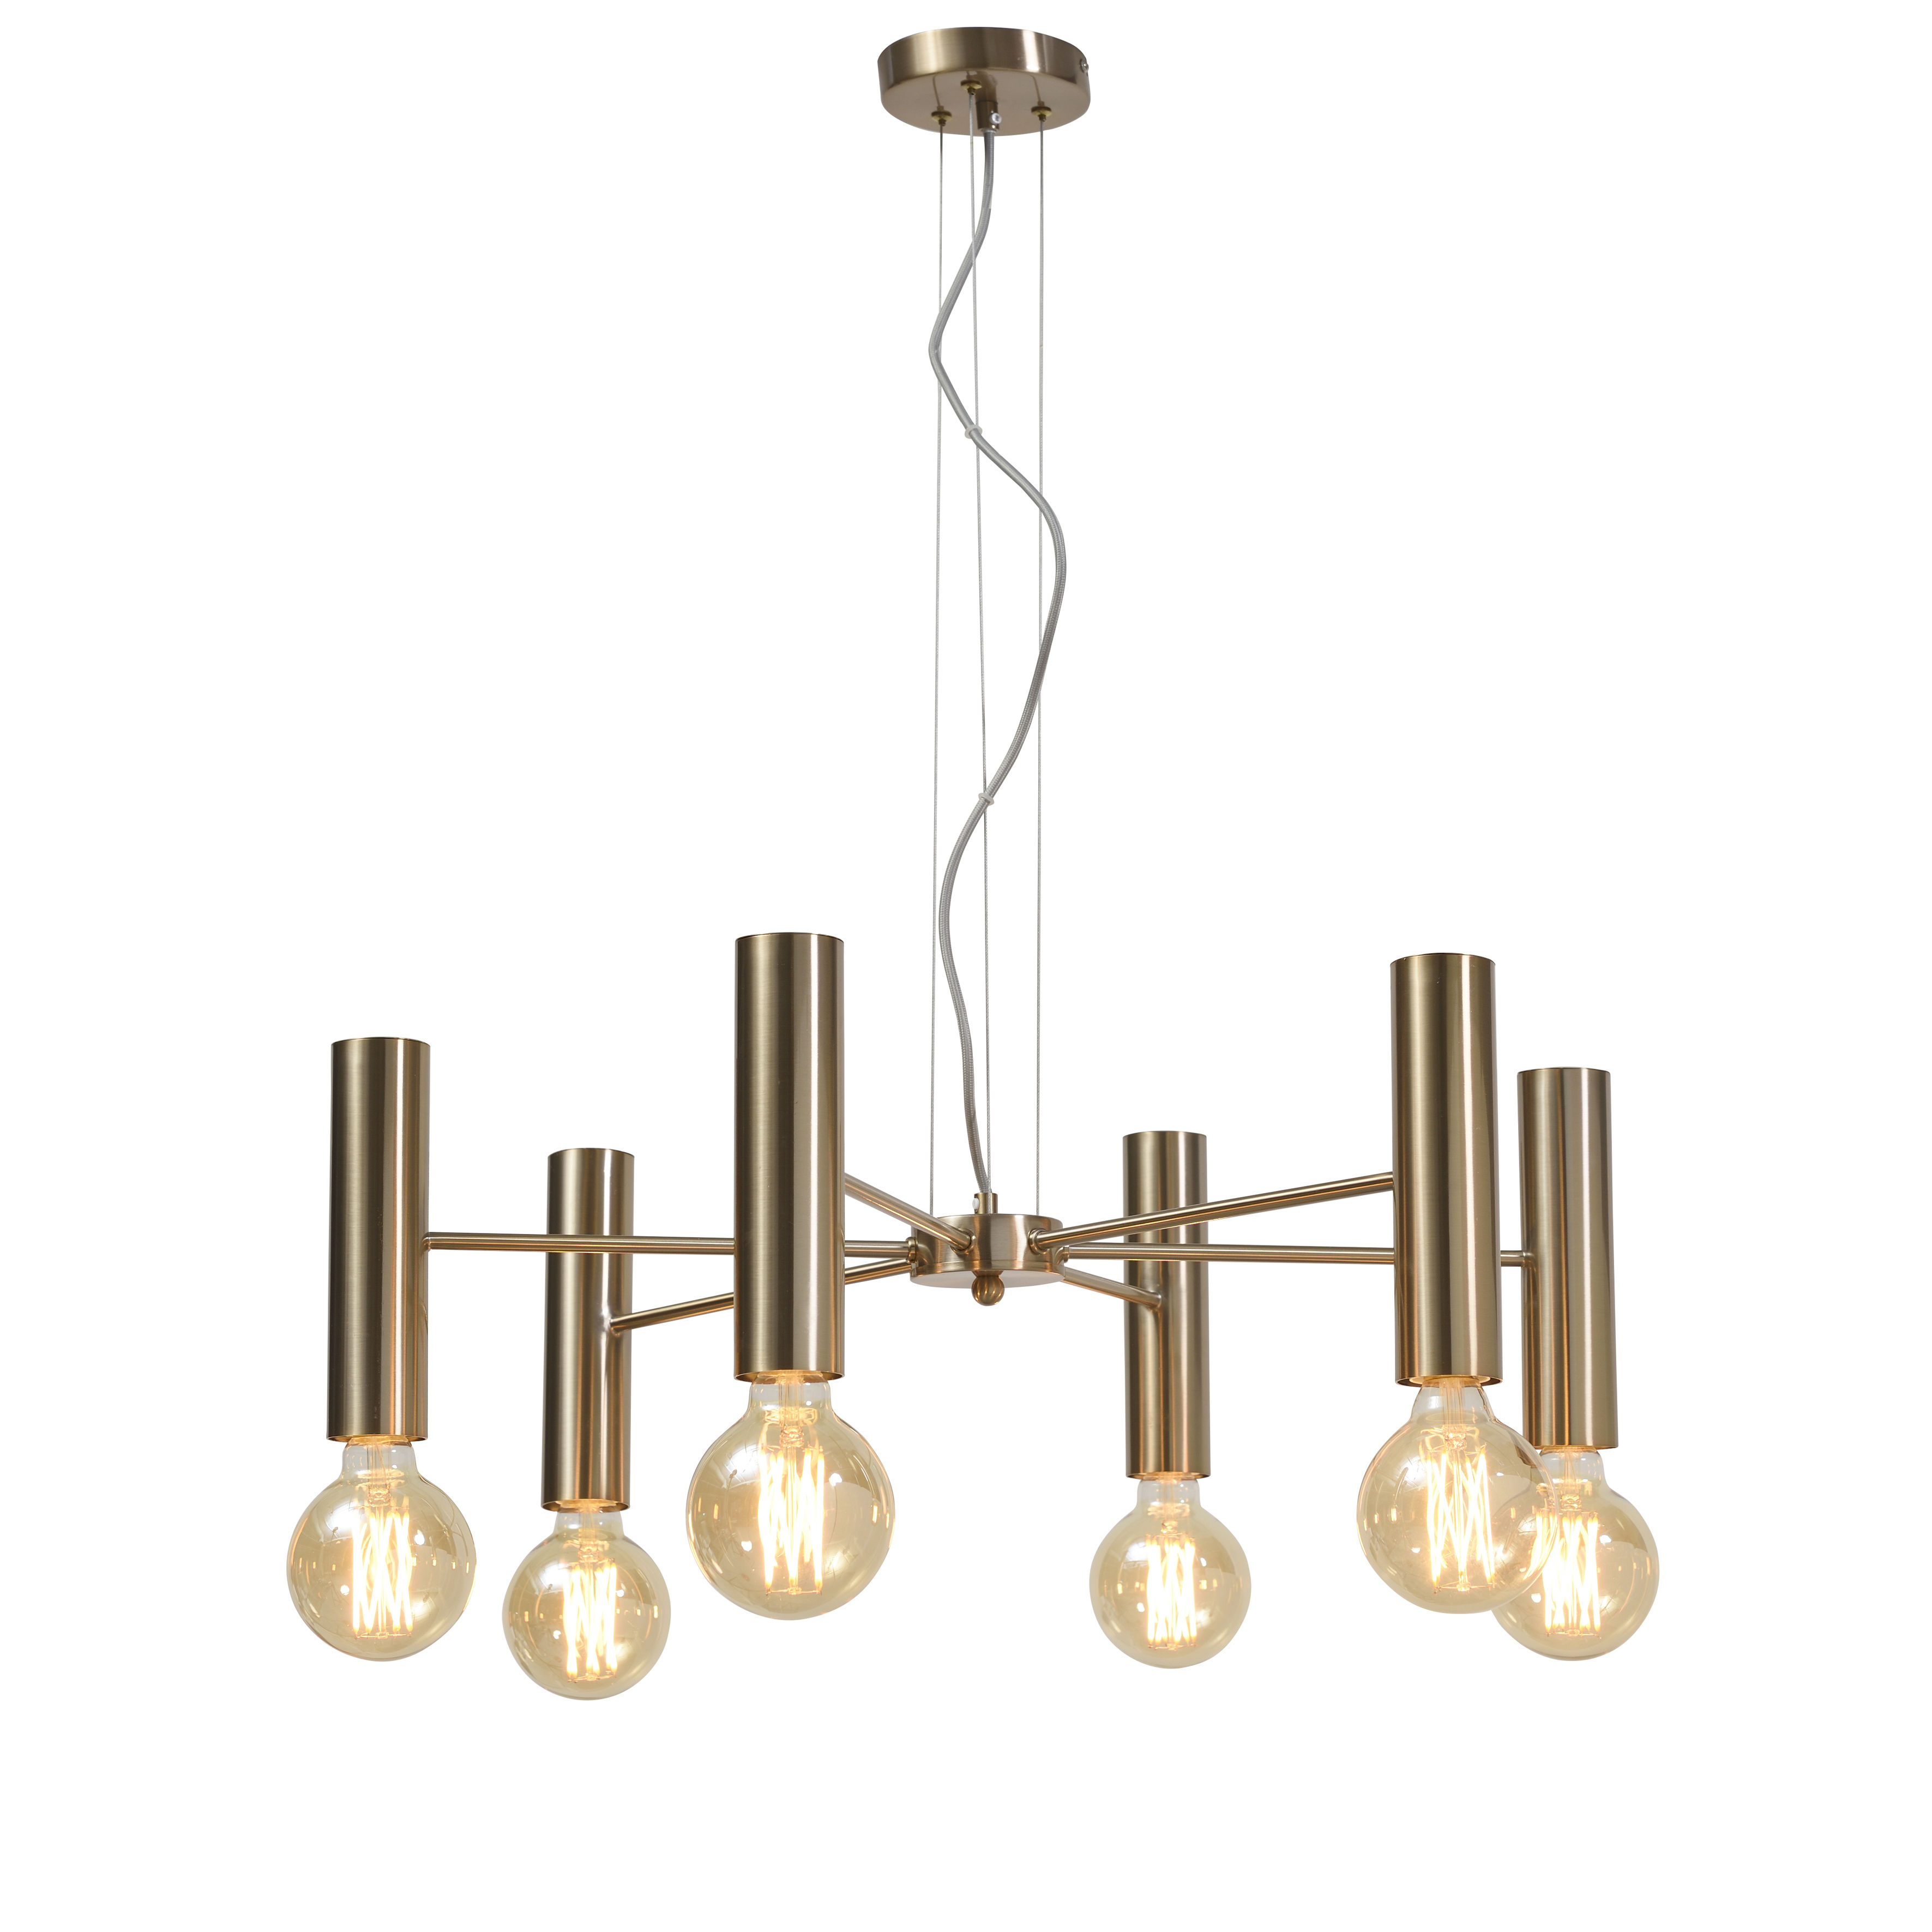 Lighting - Pendant Lighting - Cannes Multi Large Pendant - / 6 arms - Metal / Ø 70 cm by It's about Romi - Gold - Iron